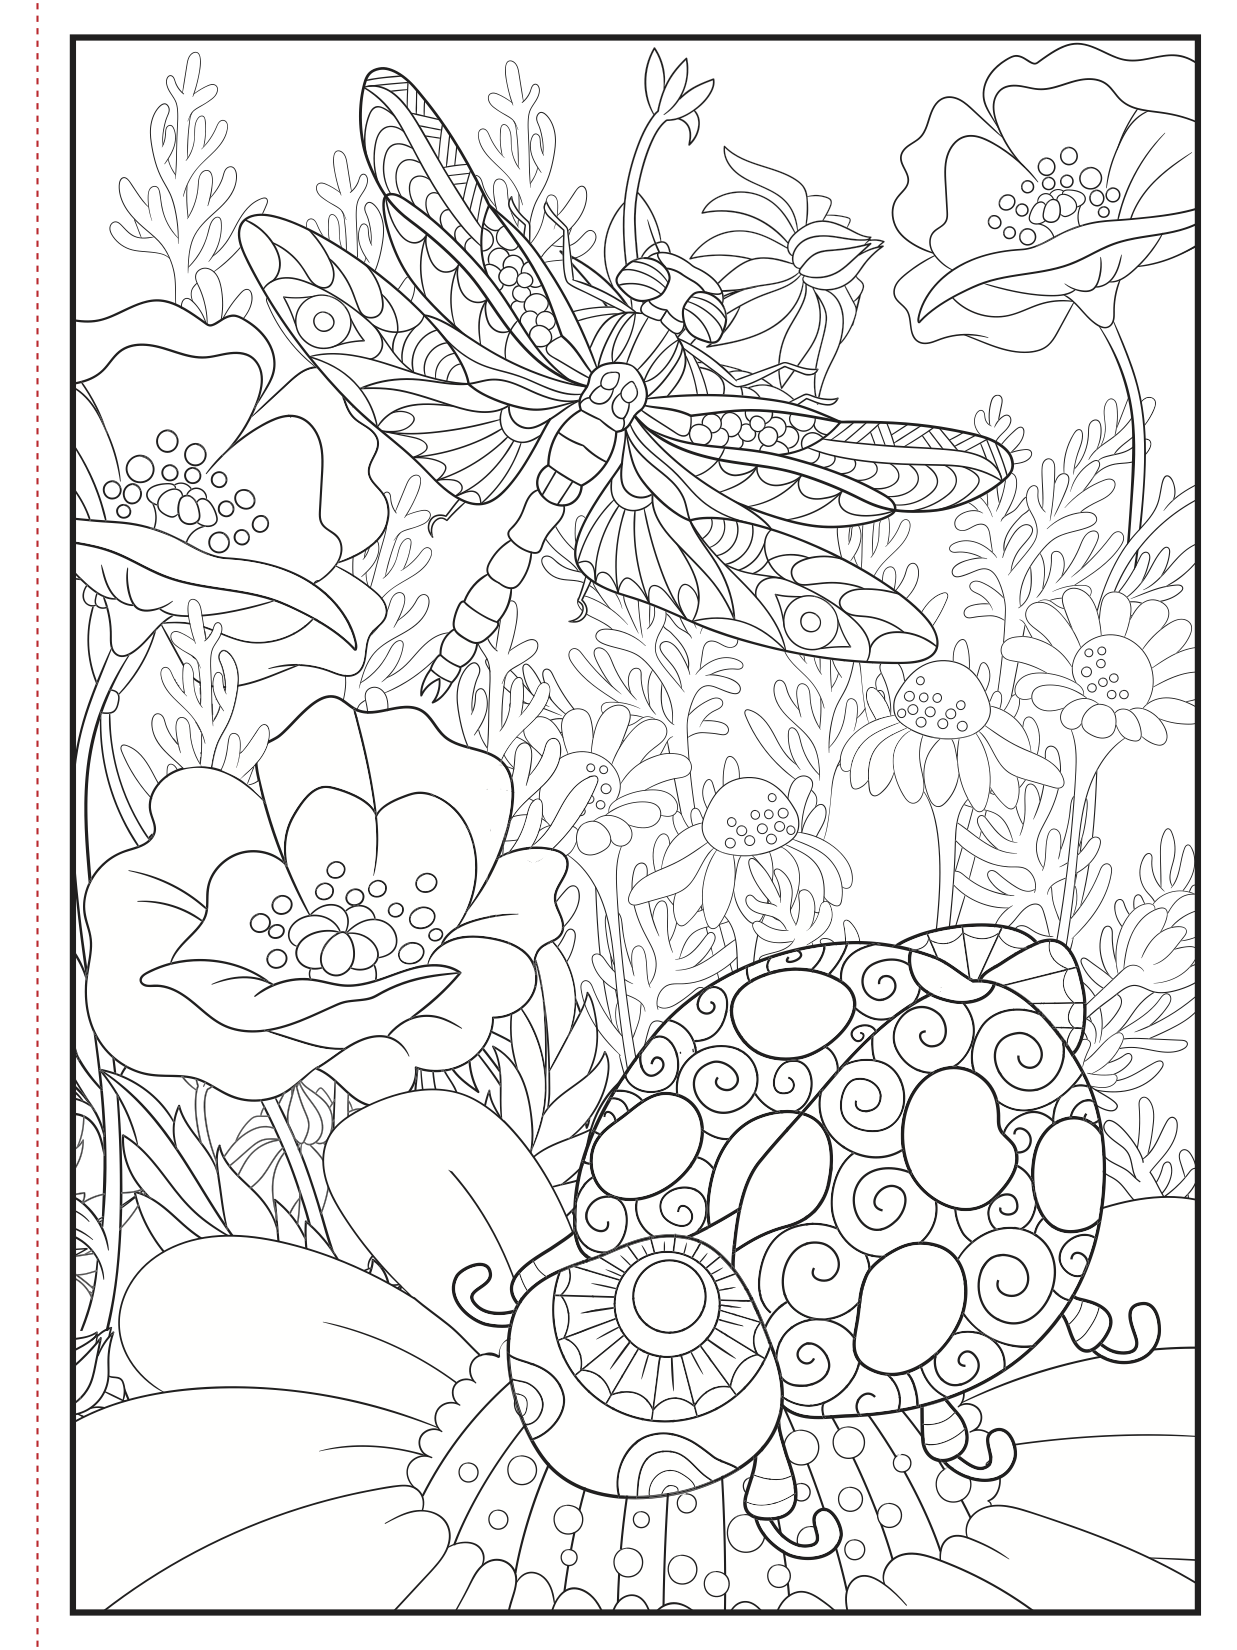 Choose From A Variety Of Free Coloring Pages From Our Coloring Book Colors In Bloom Freeprin Bug Coloring Pages Geometric Coloring Pages Bird Coloring Pages